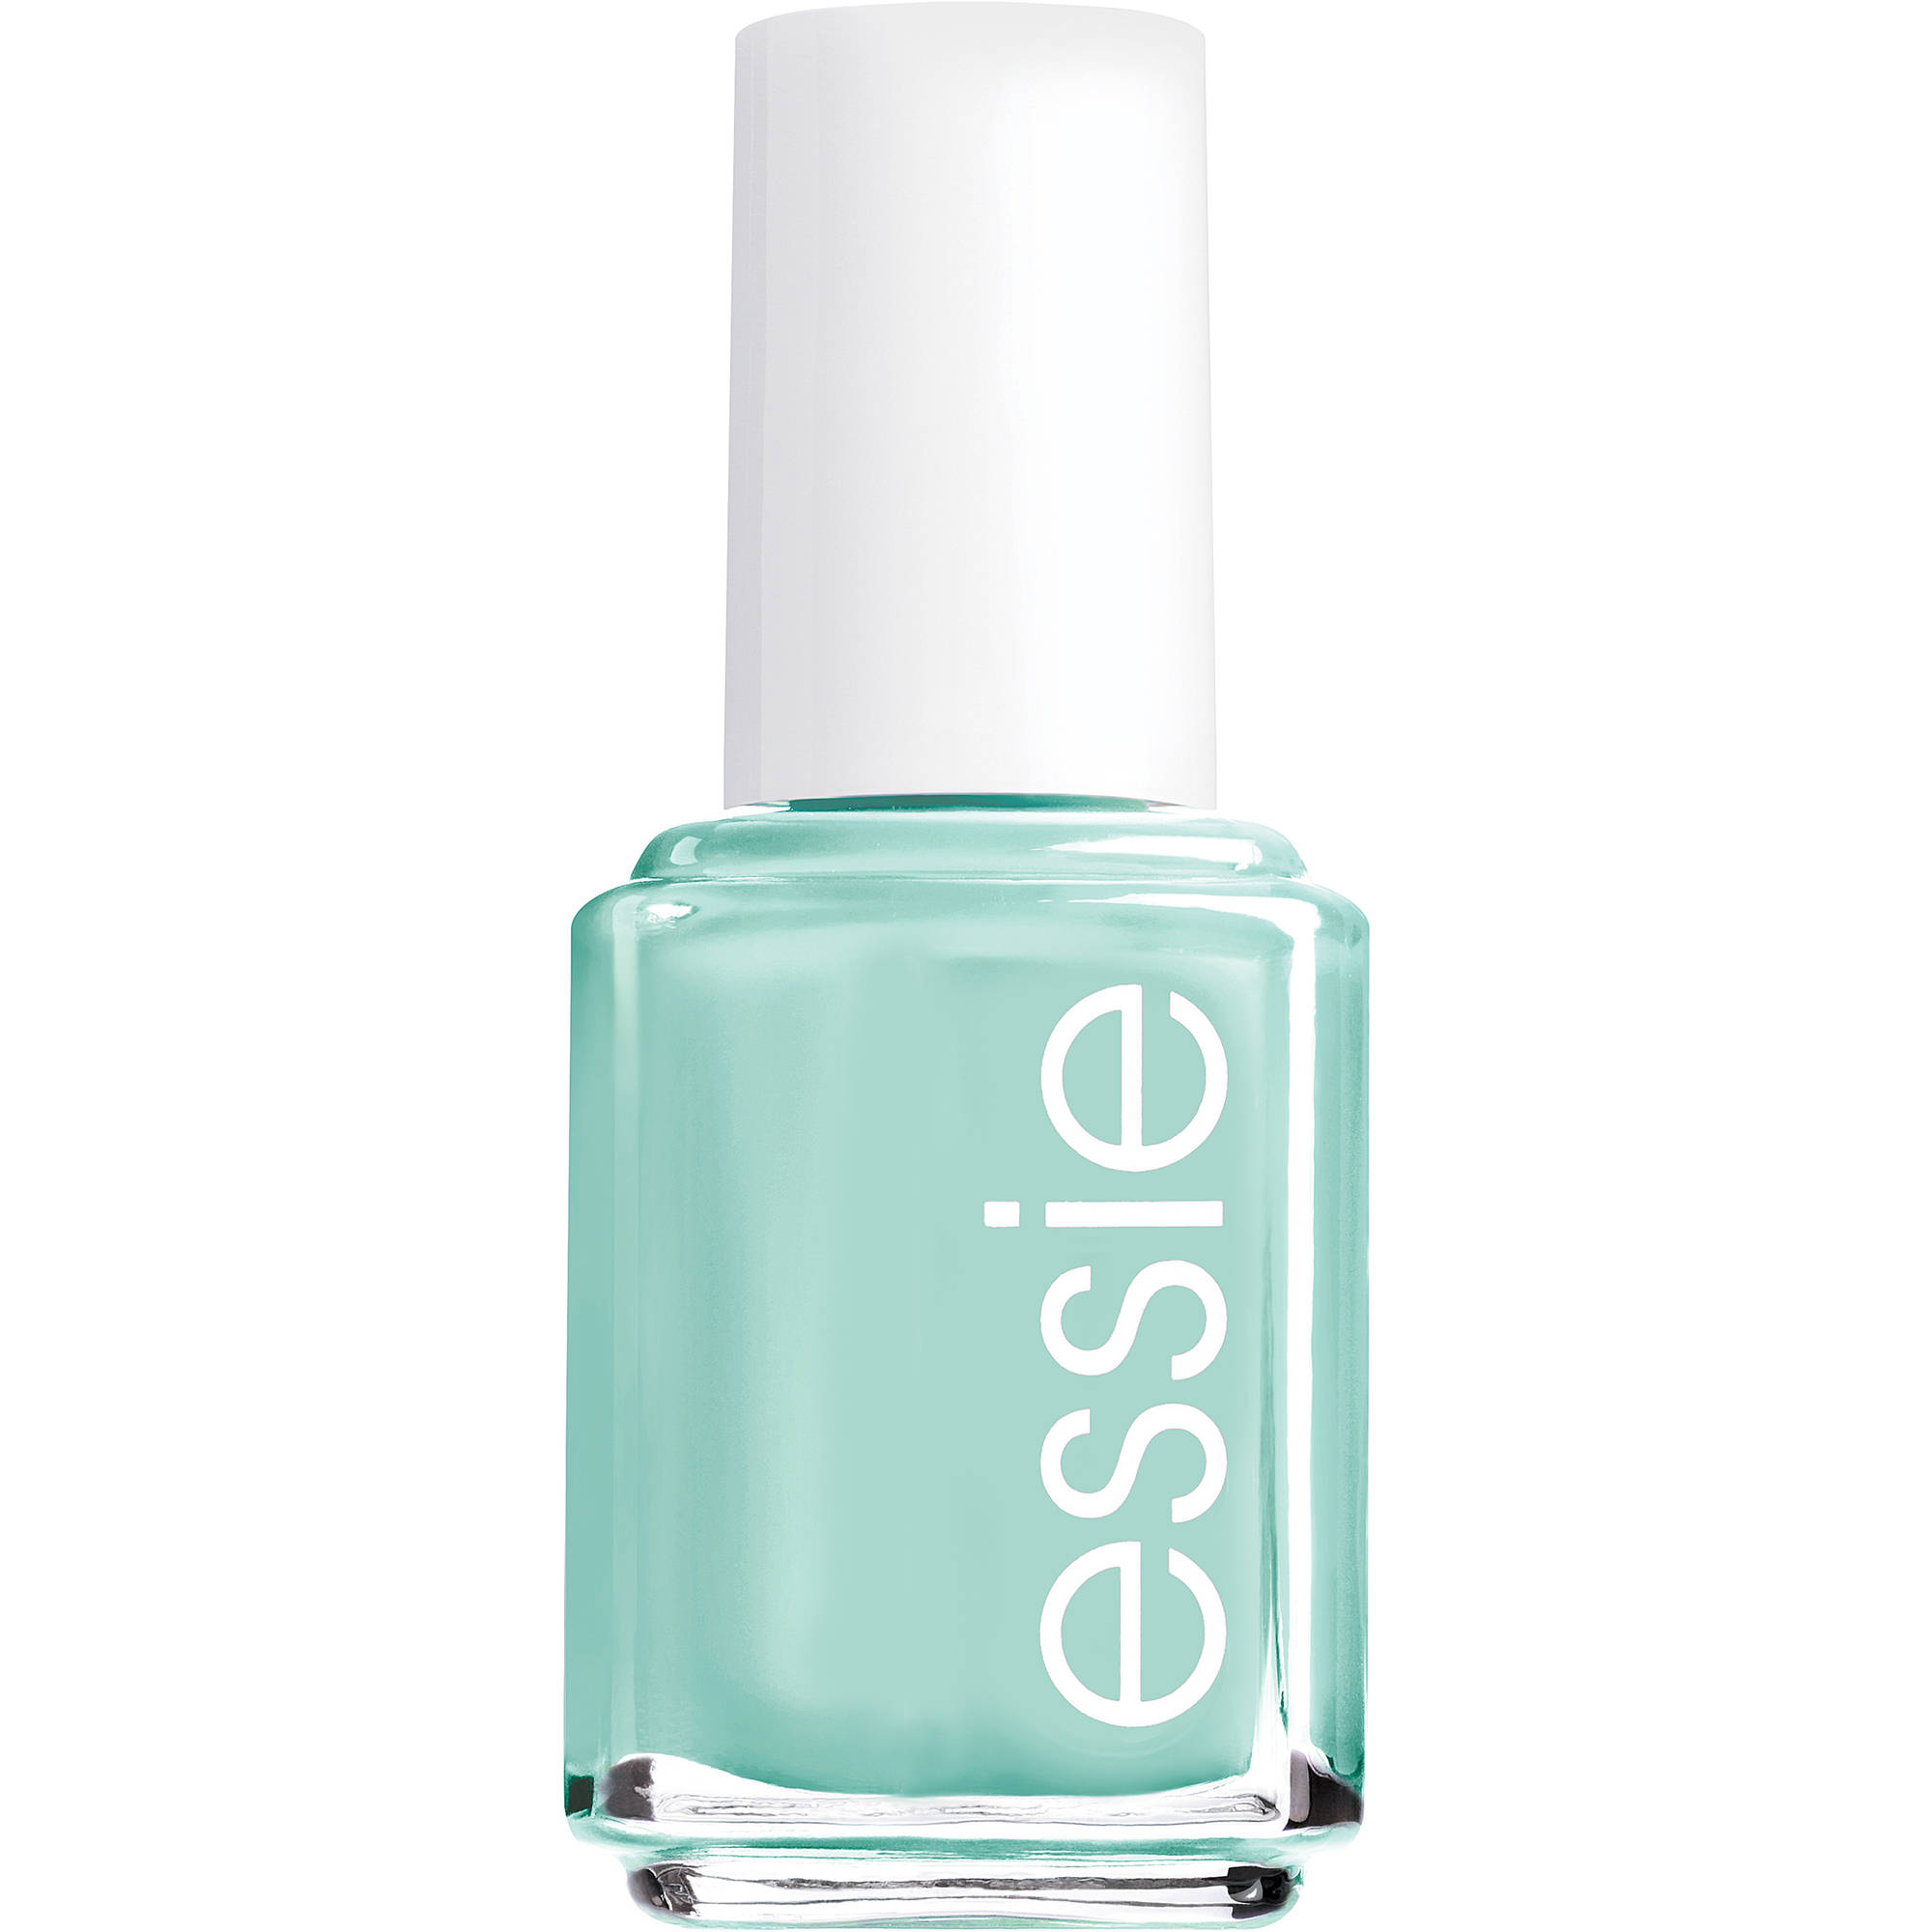 Essie Nail Polish (Greens) Mint Candy Apple, 0.46 fl oz - Walmart.com